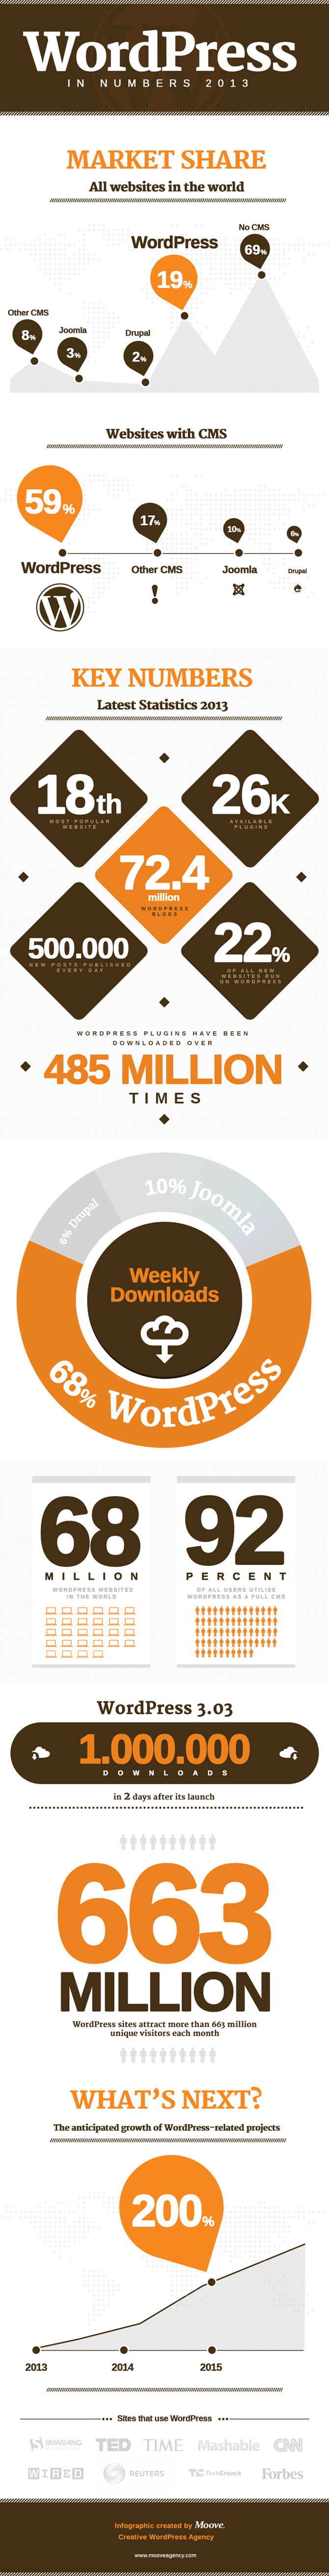 WordPress in Numbers